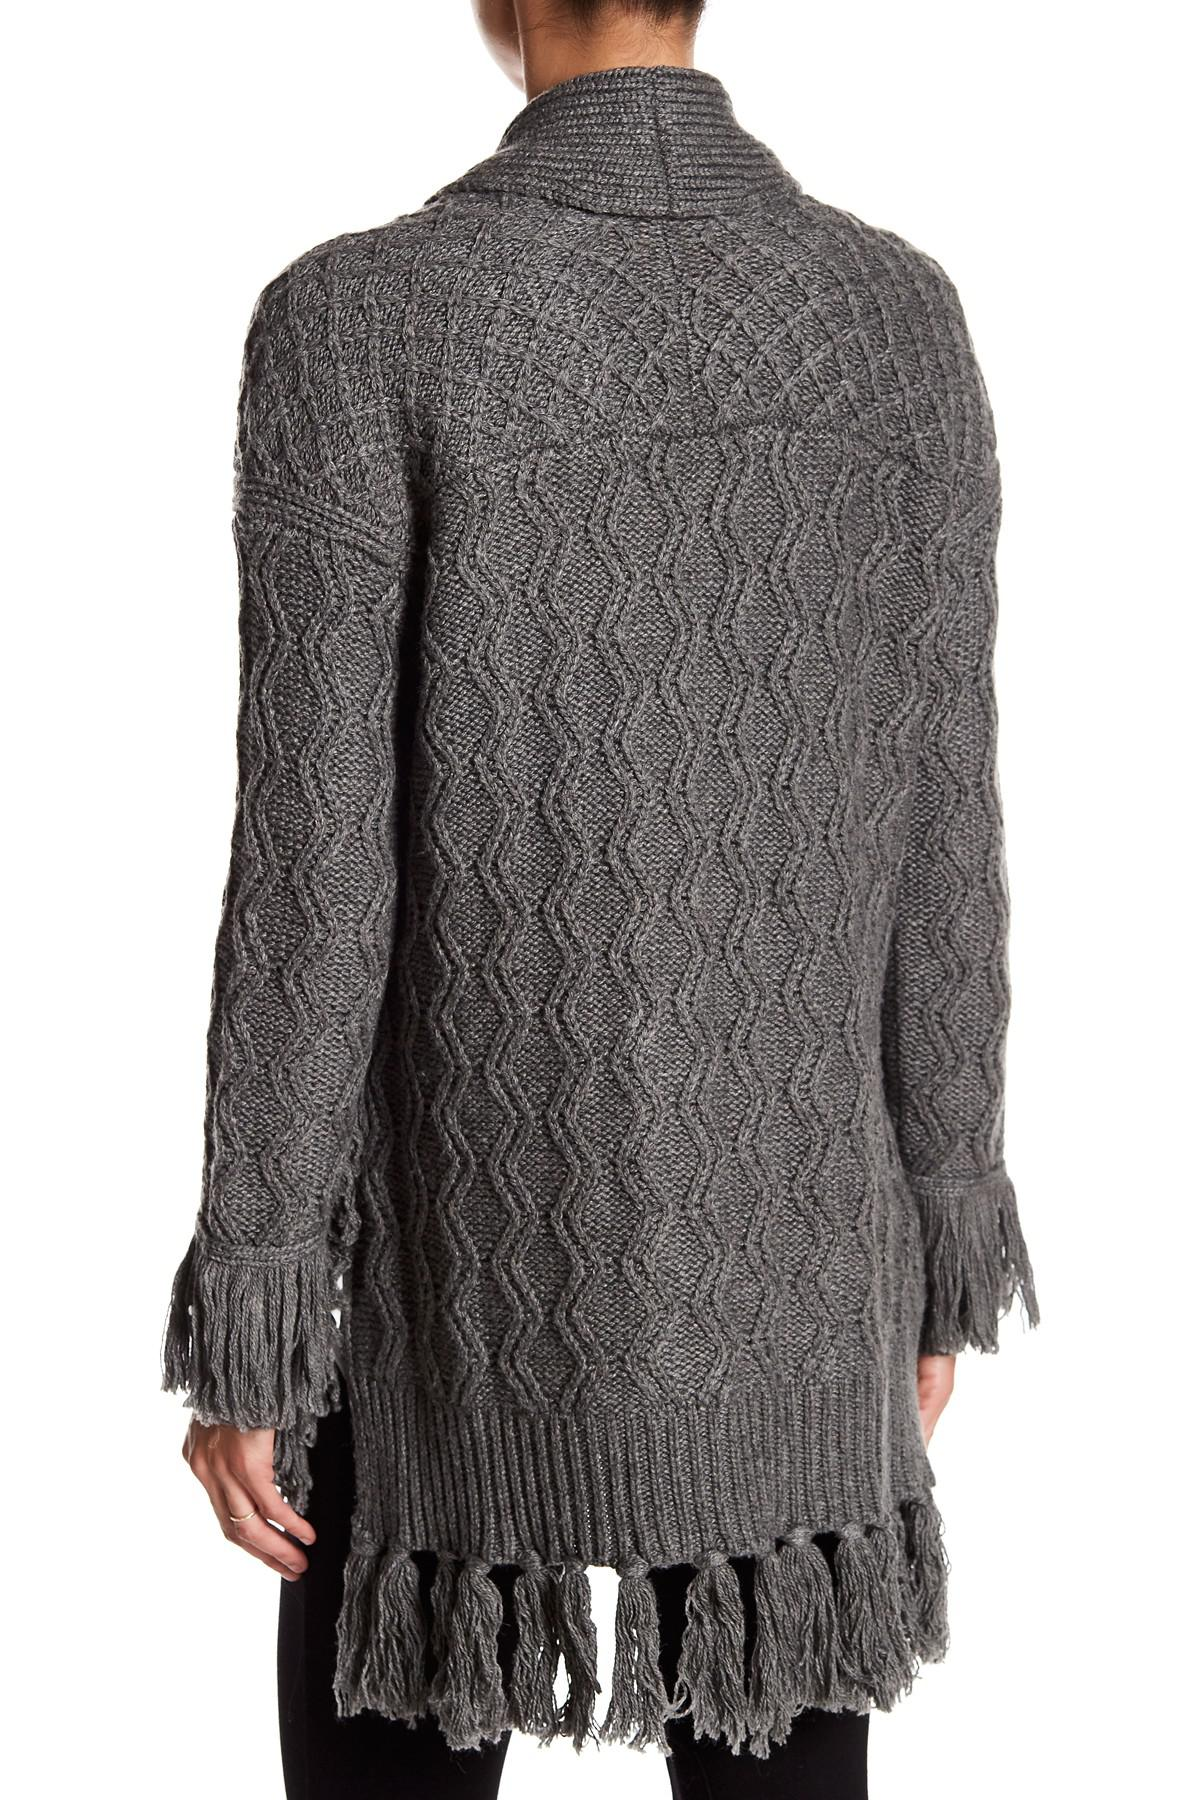 Ella moss Long Sleeve Cable Knit Cardigan in Gray | Lyst